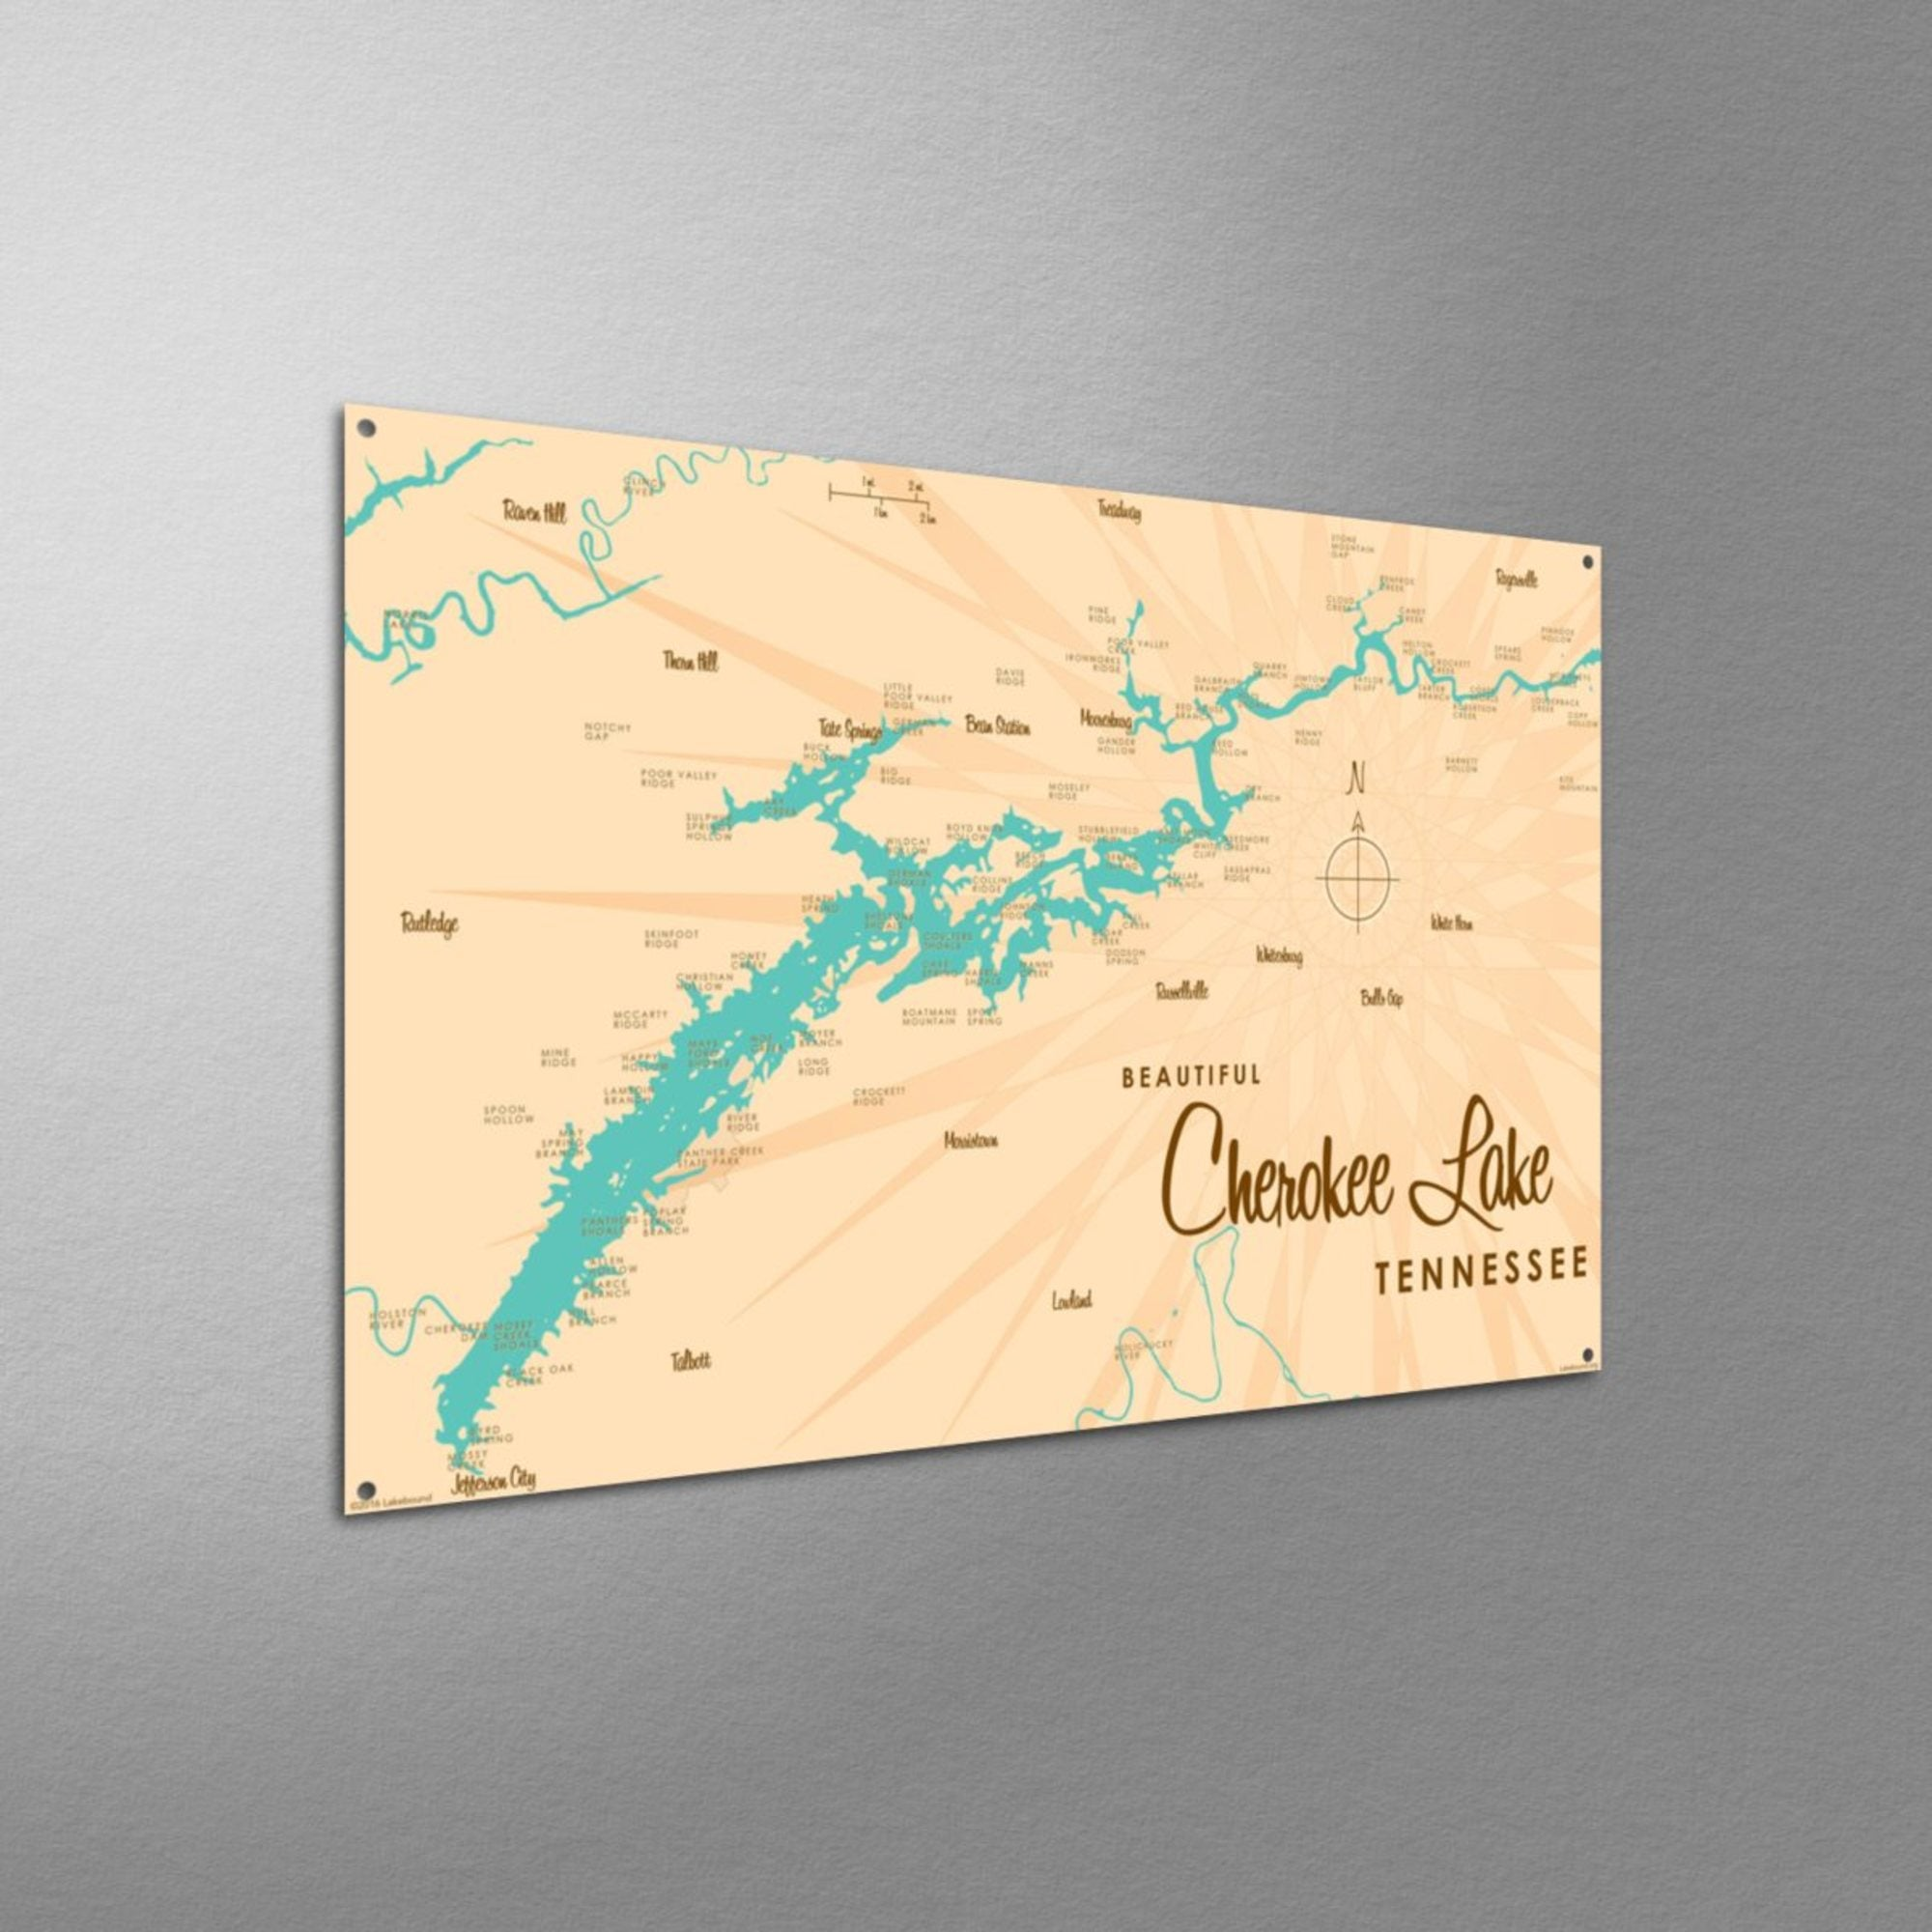 Cherokee Lake Tennessee, Metal Sign Map Art